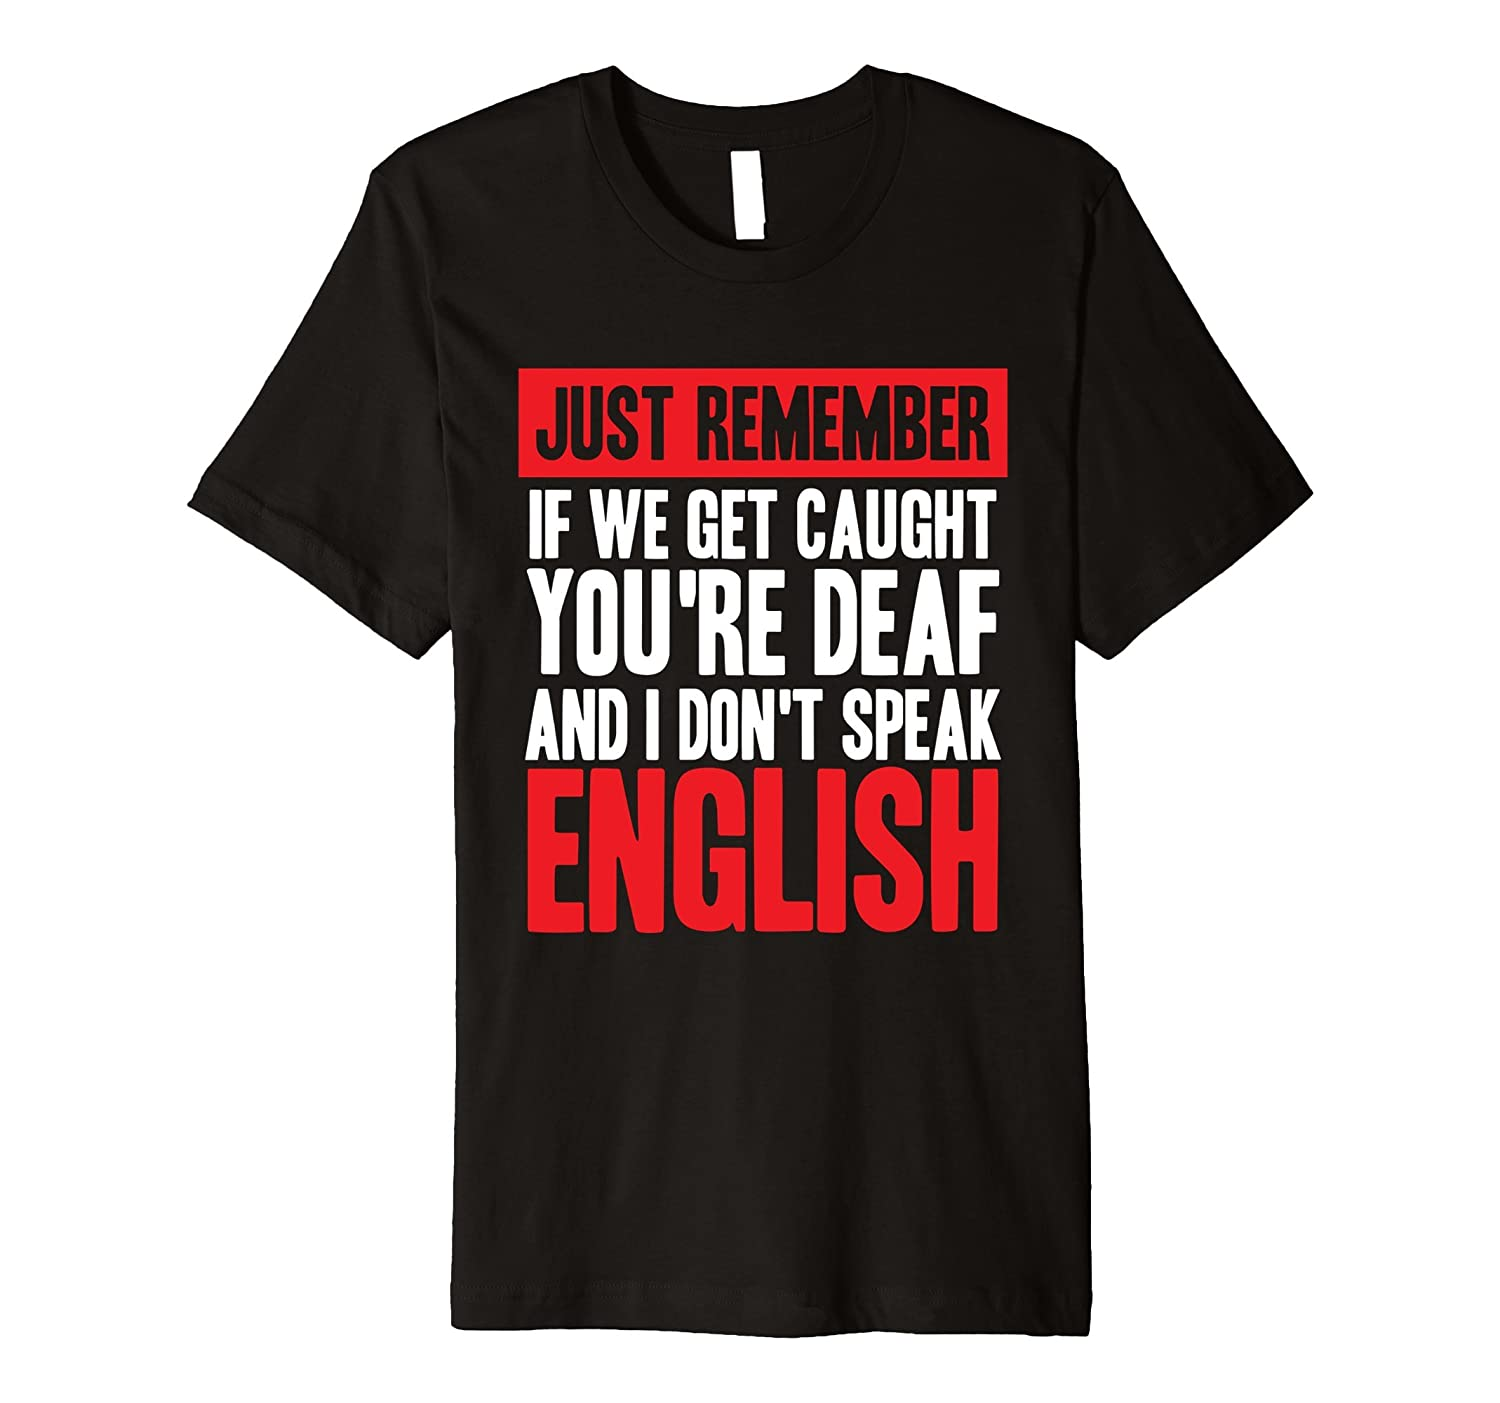 d873de3c Amazon.com: If We Get Caught You're Deaf I Don't Speak English - Sibling:  Clothing